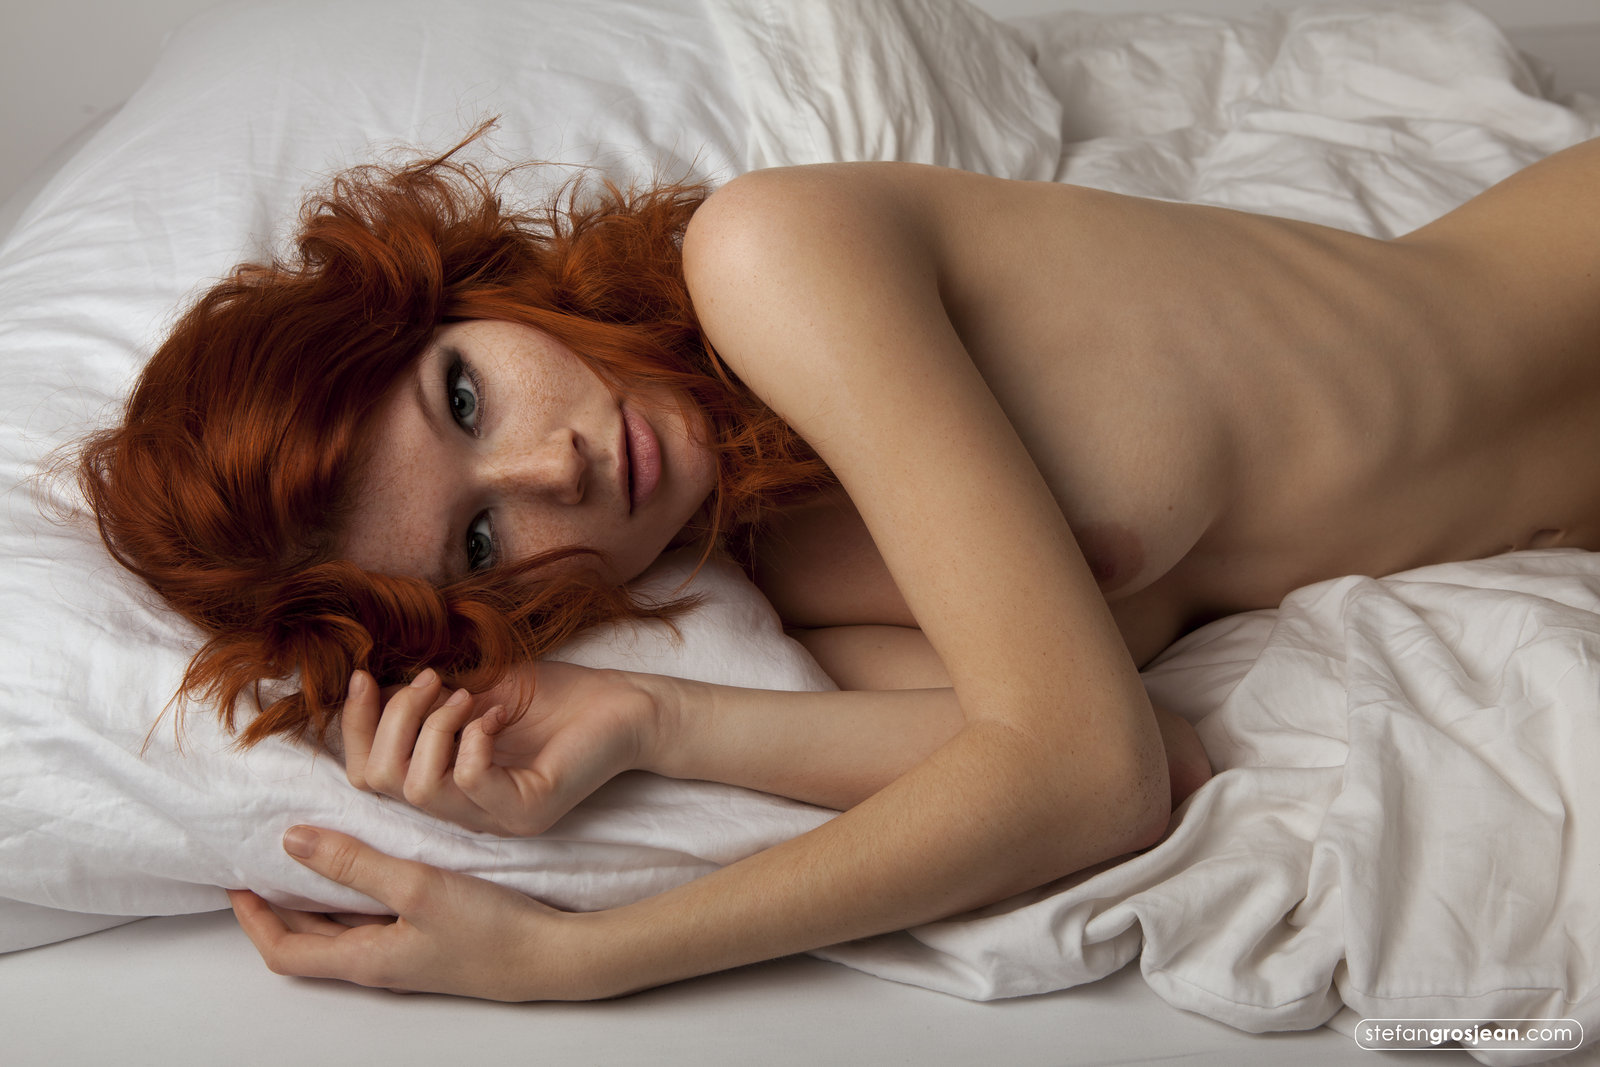 hot-nude-redhead-in-a-hotel-room